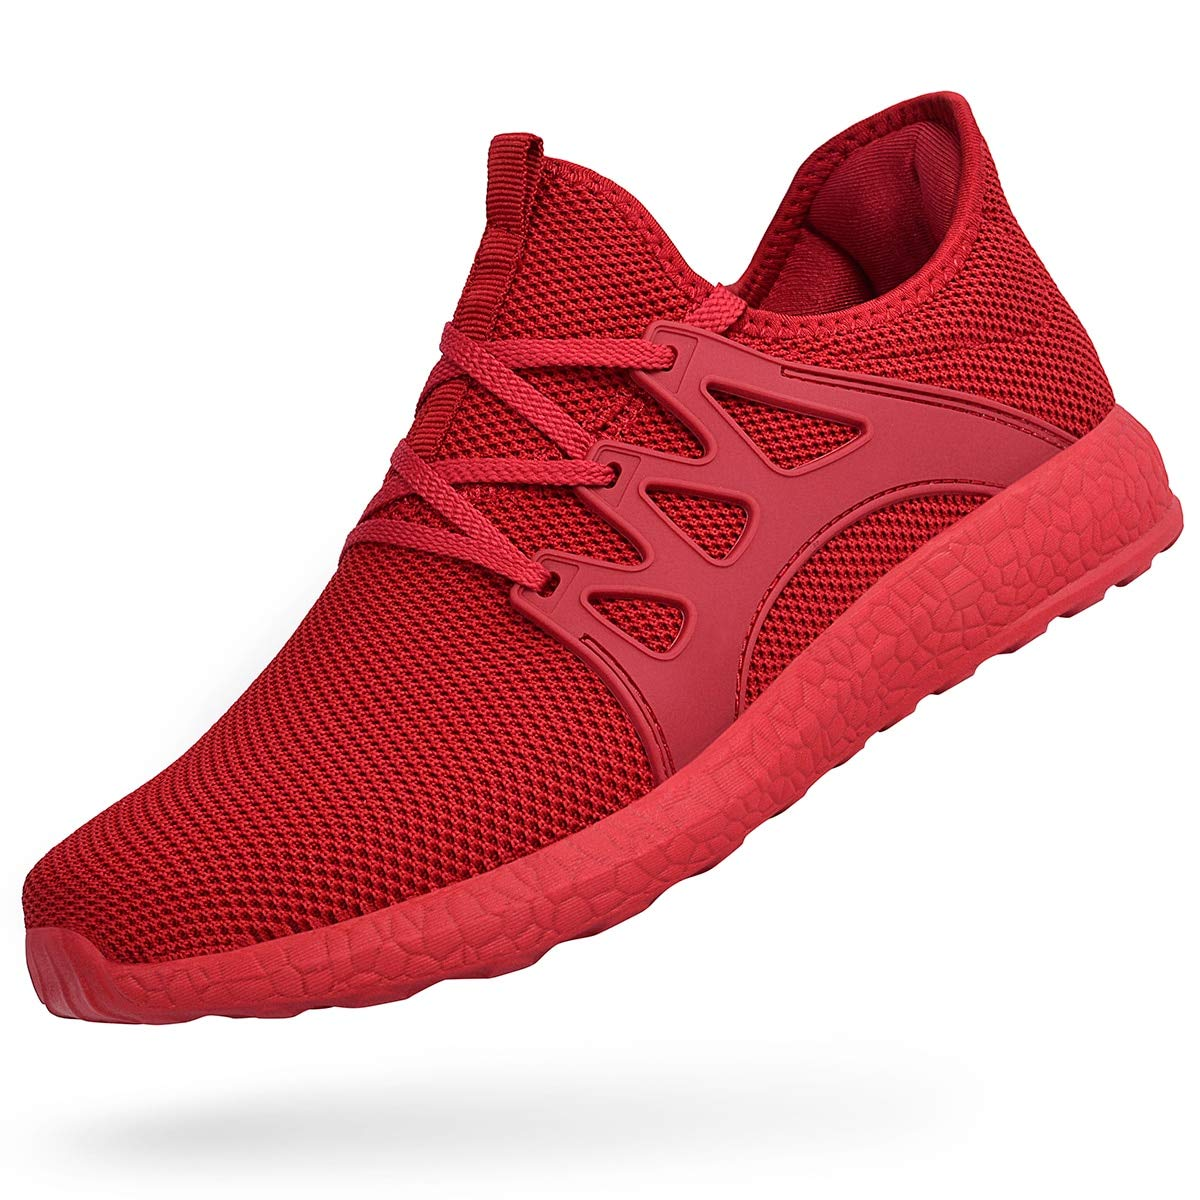 QANSI Women Men Running Shoes Sports Trainers Athletic Comfy Walking Shoes Lightweight Gym Sneakers